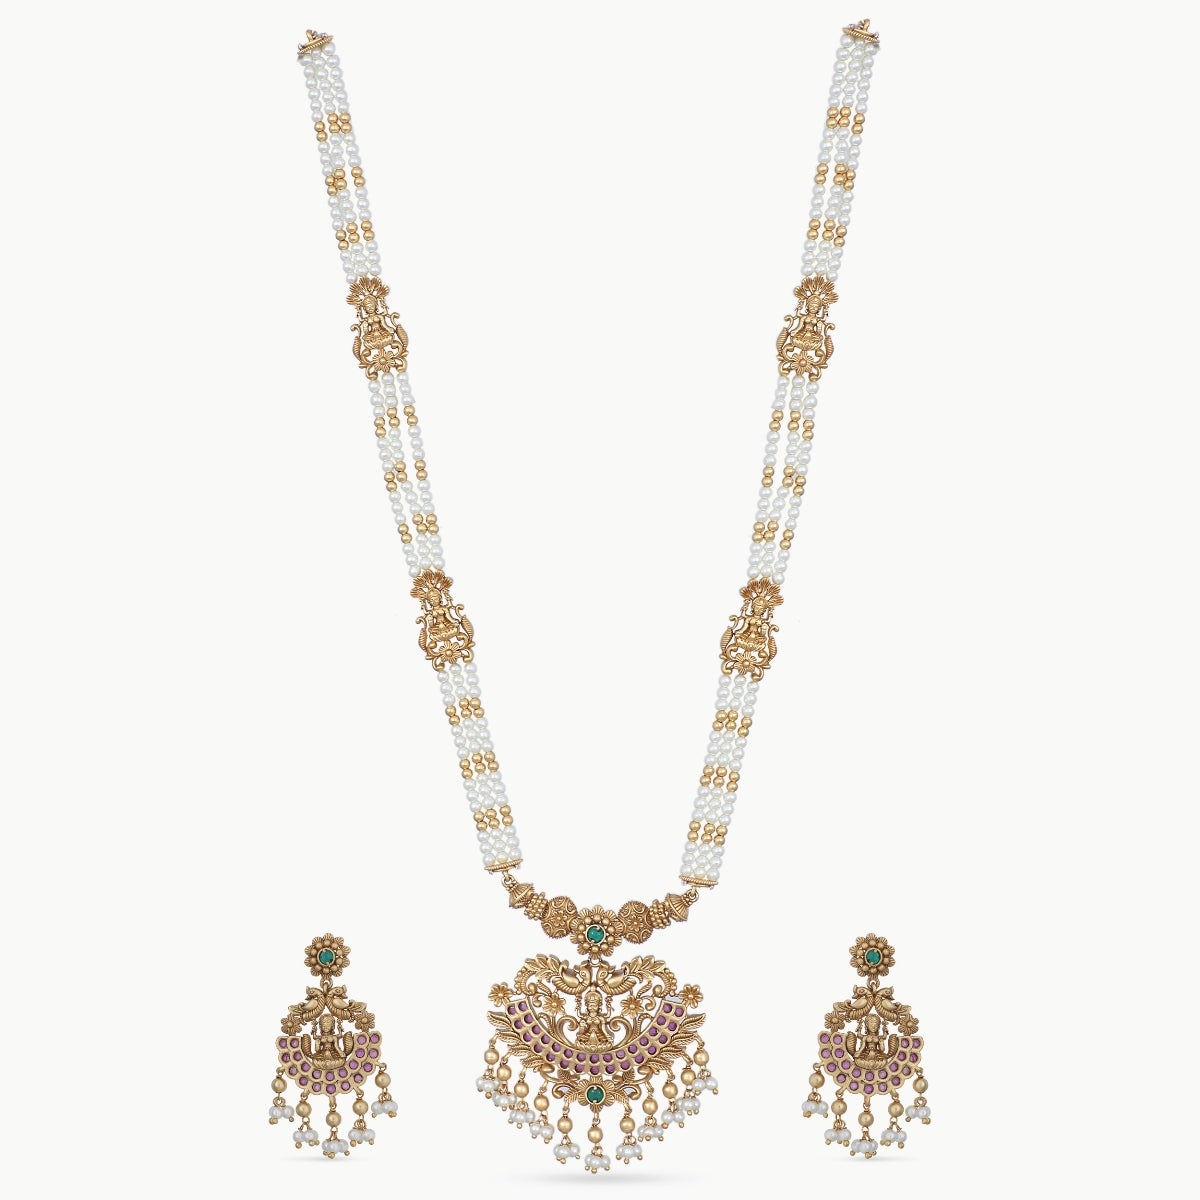 Panika Antique Long Necklace Set